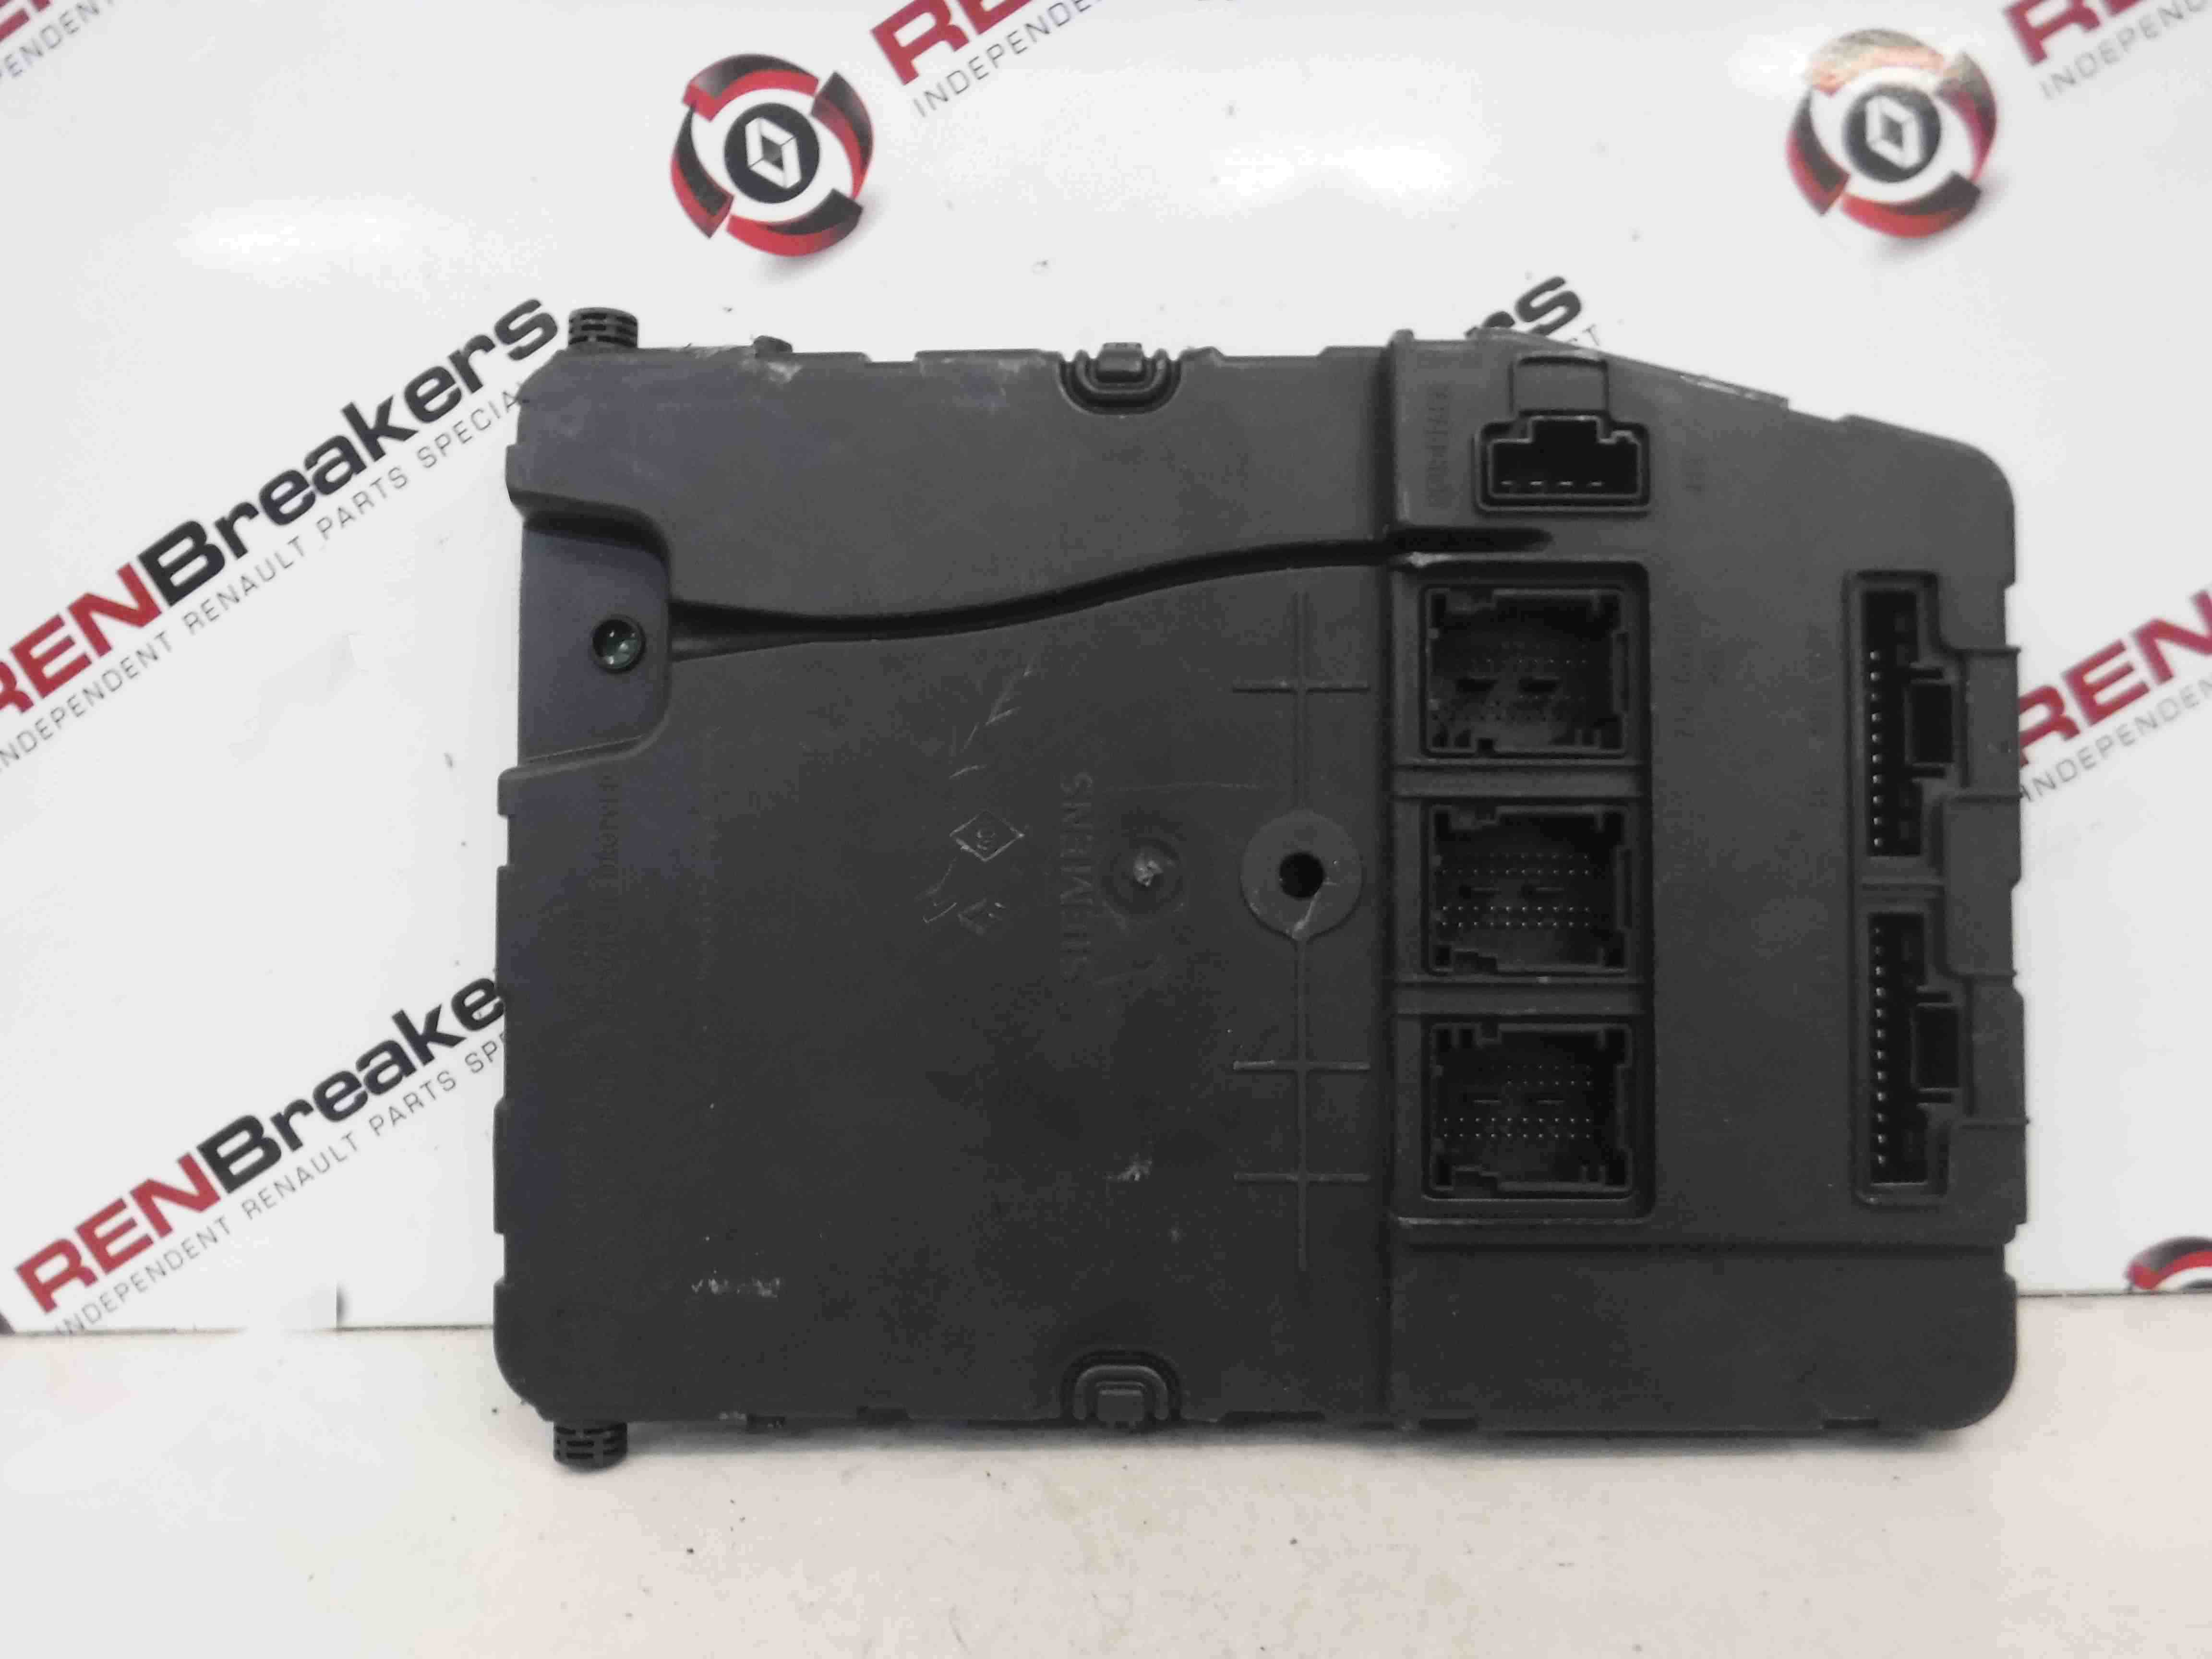 Renault Megane 2002-2008 Dashboard UCH BCM Fuse Box 8200606825 - Store -  Renault Breakers - Used Renault Car Parts & Spares Specialist